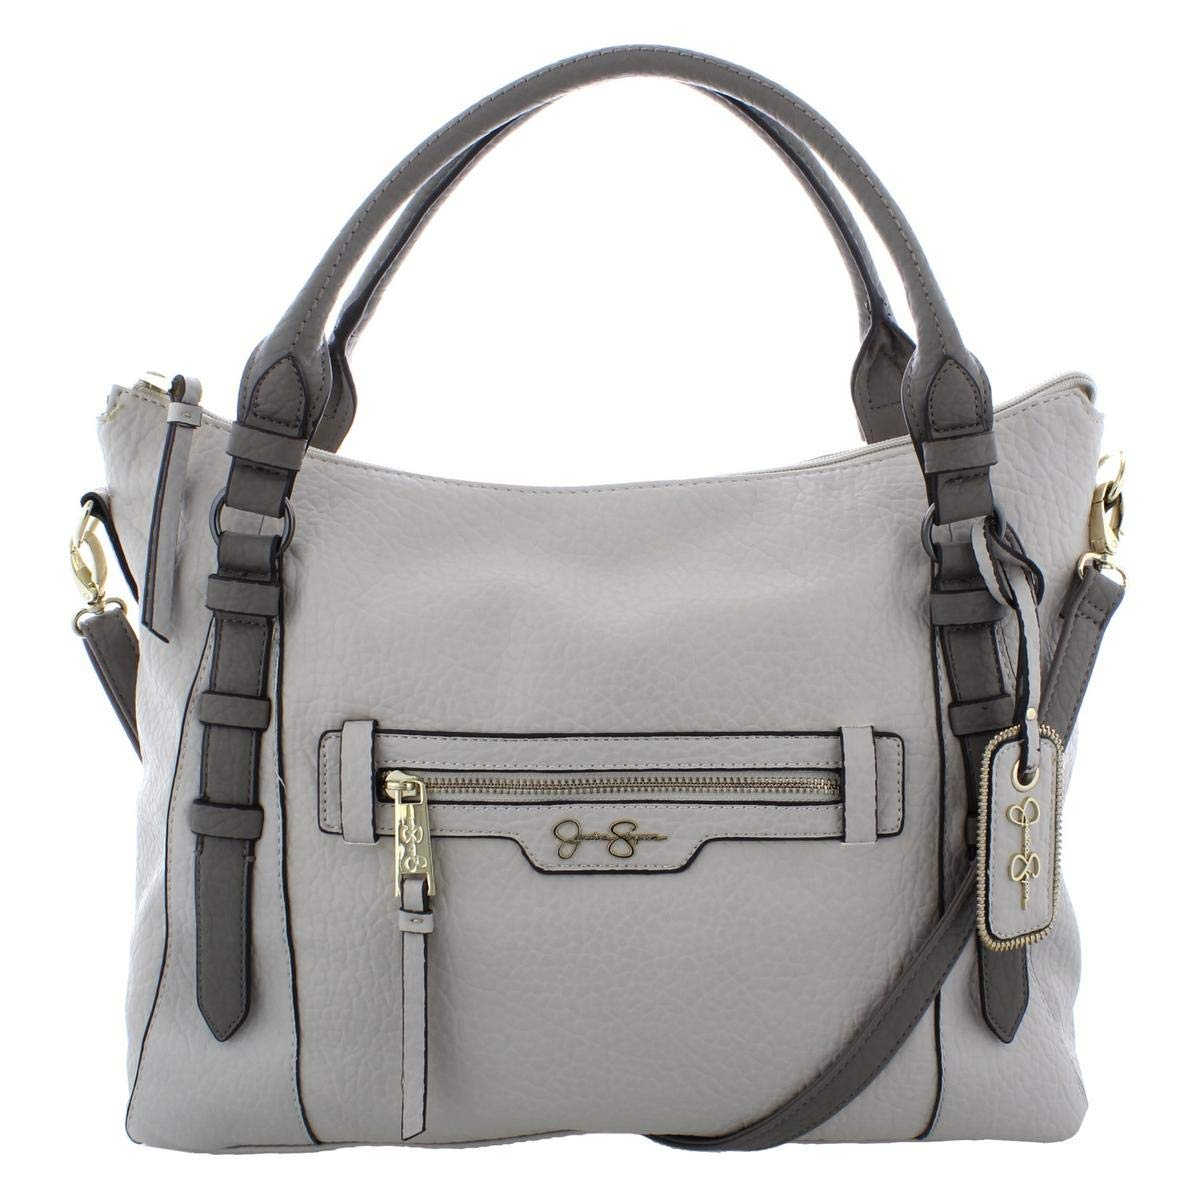 6b433223bf6 Jessica Simpson Womens Everly Faux Leather Convertible Tote Handbag ...